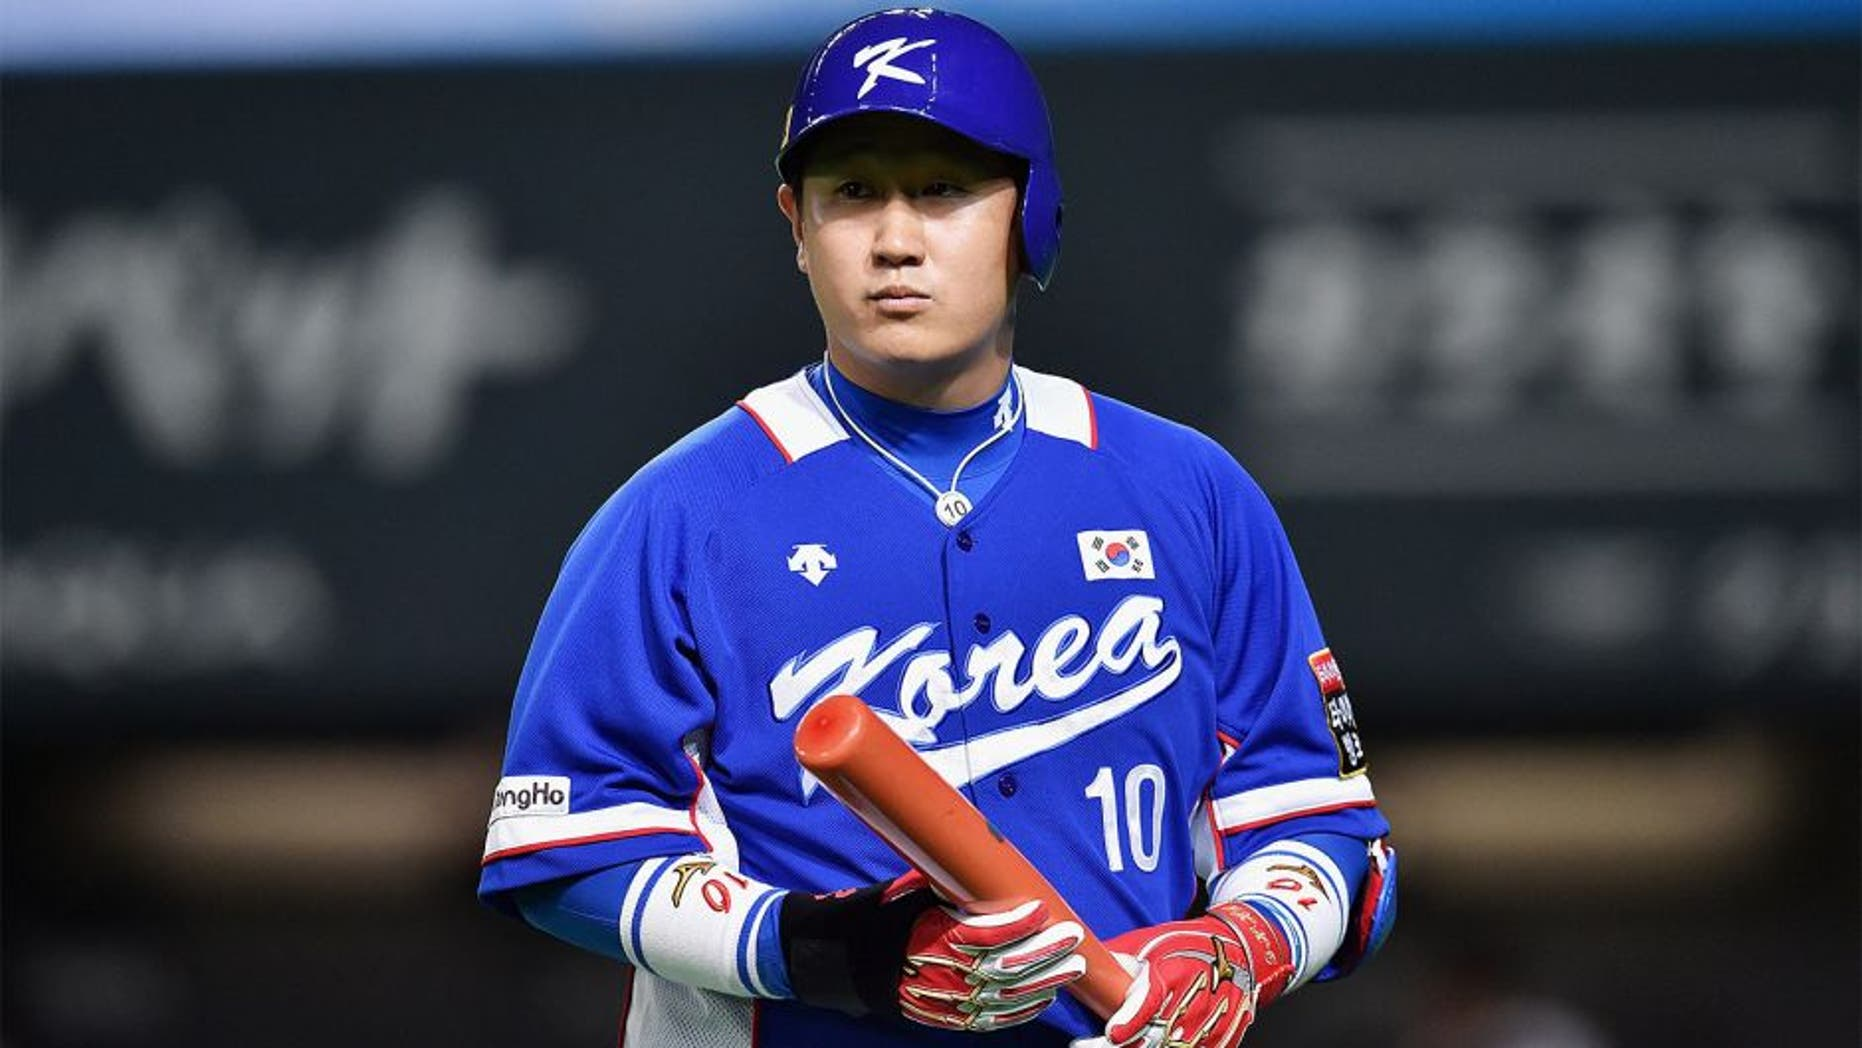 SAPPORO, JAPAN - NOVEMBER 08: Infielder Lee Dae Ho #10 of South Korea returns to the dogout after the strike outin the top of the second inning during the WBSC Premier 12 match between Japan and South Korea at the Sapporo Dome on November 8, 2015 in Sapporo, Hokkaido, Japan. (Photo by Atsushi Tomura/Getty Images)